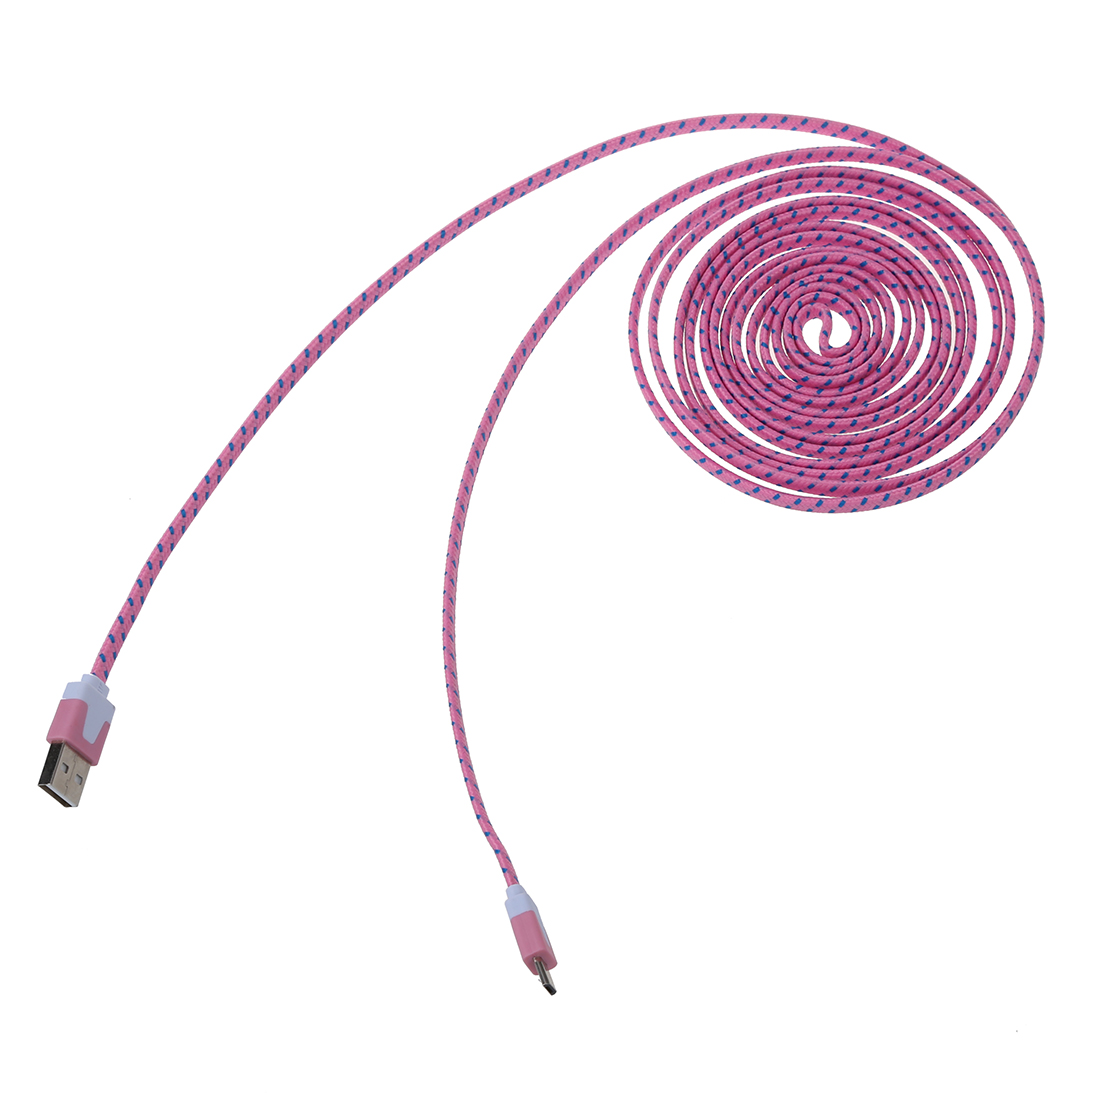 SCLS 3M/10Ft Nylon net weave Micro-USB Data cable Pink